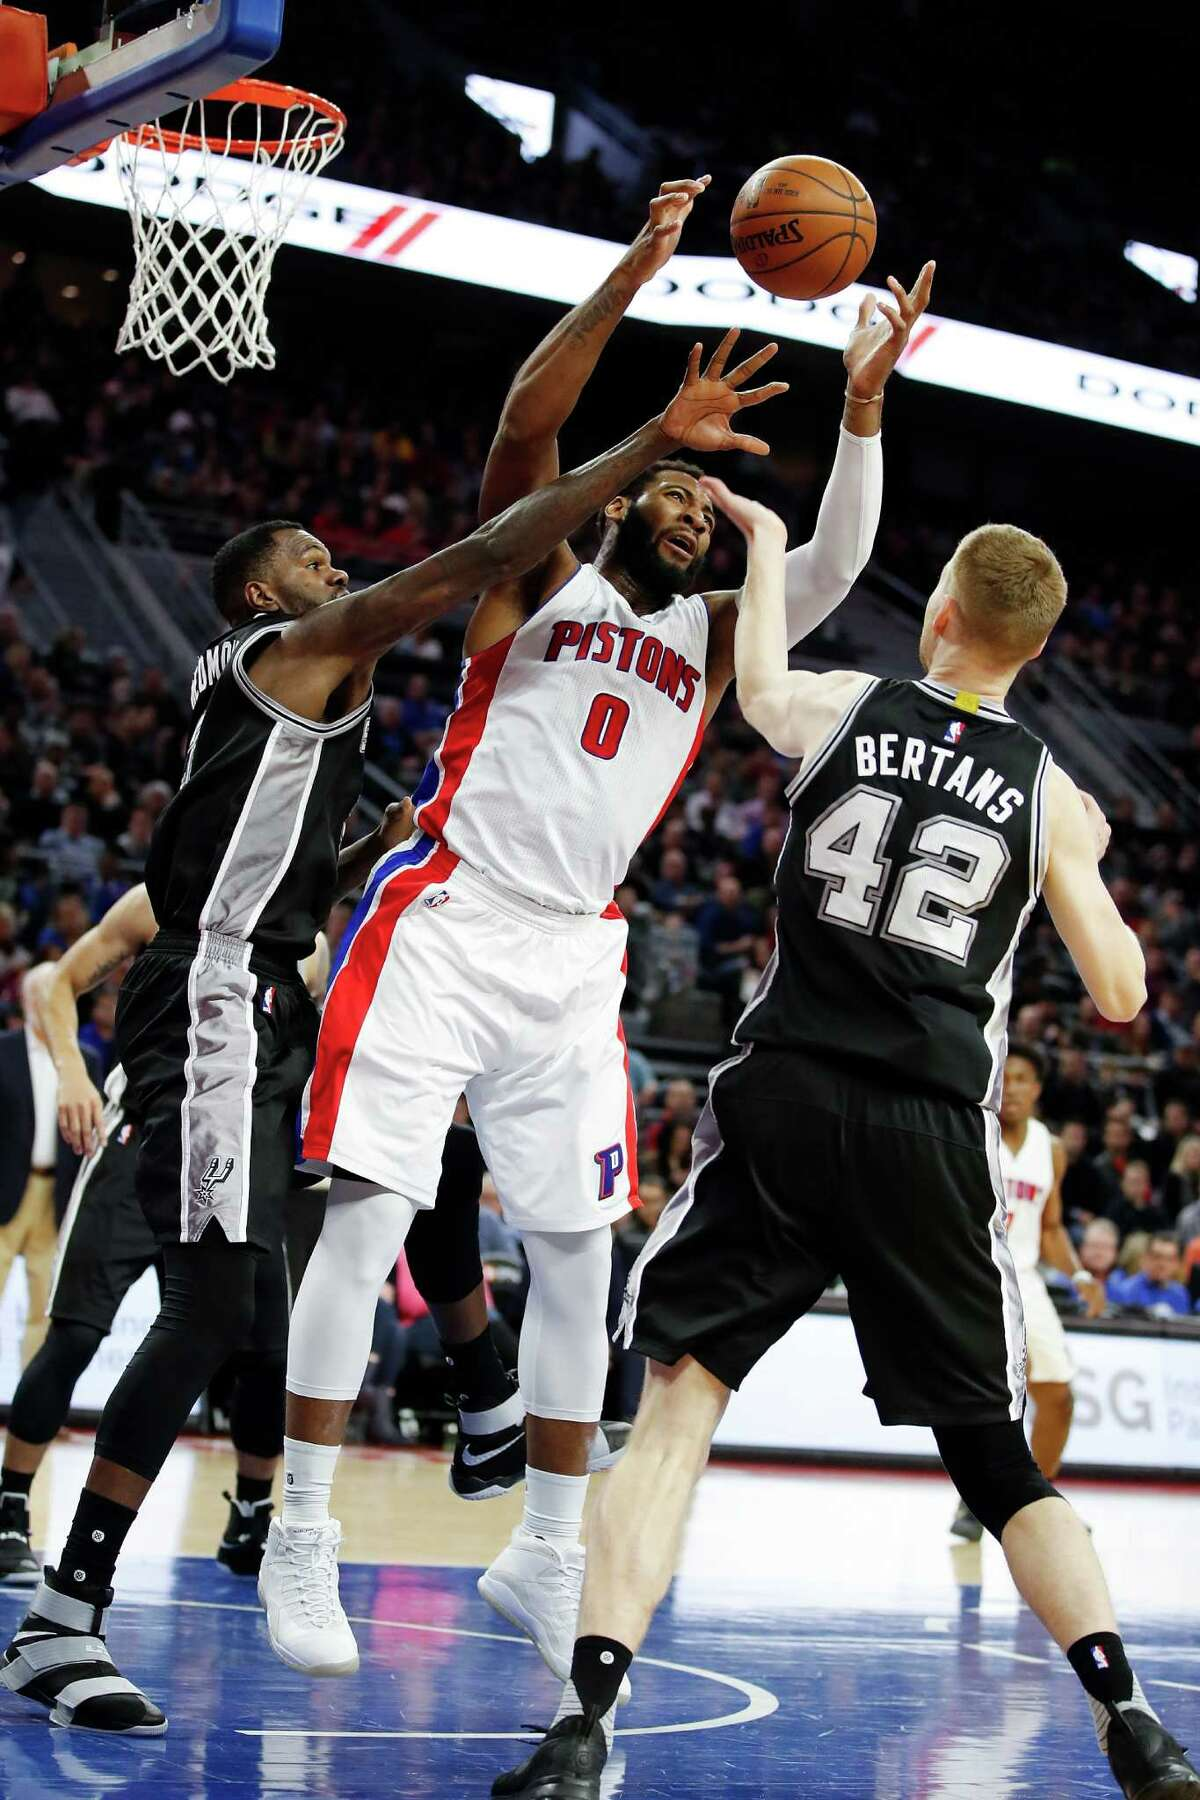 AUBURN HILLS, MI - FEBRUARY 10: Andre Drummond #0 of the Detroit Pistons grabs a first half rebound between Dewayne Dedmon #3 and Davis Bertans #42 of the San Antonio Spurs at the Palace of Auburn Hills on February 10, 2017 in Auburn Hills, Michigan. NOTE TO USER: User expressly acknowledges and agrees that, by downloading and or using this photograph, User is consenting to the terms and conditions of the Getty Images License Agreement.